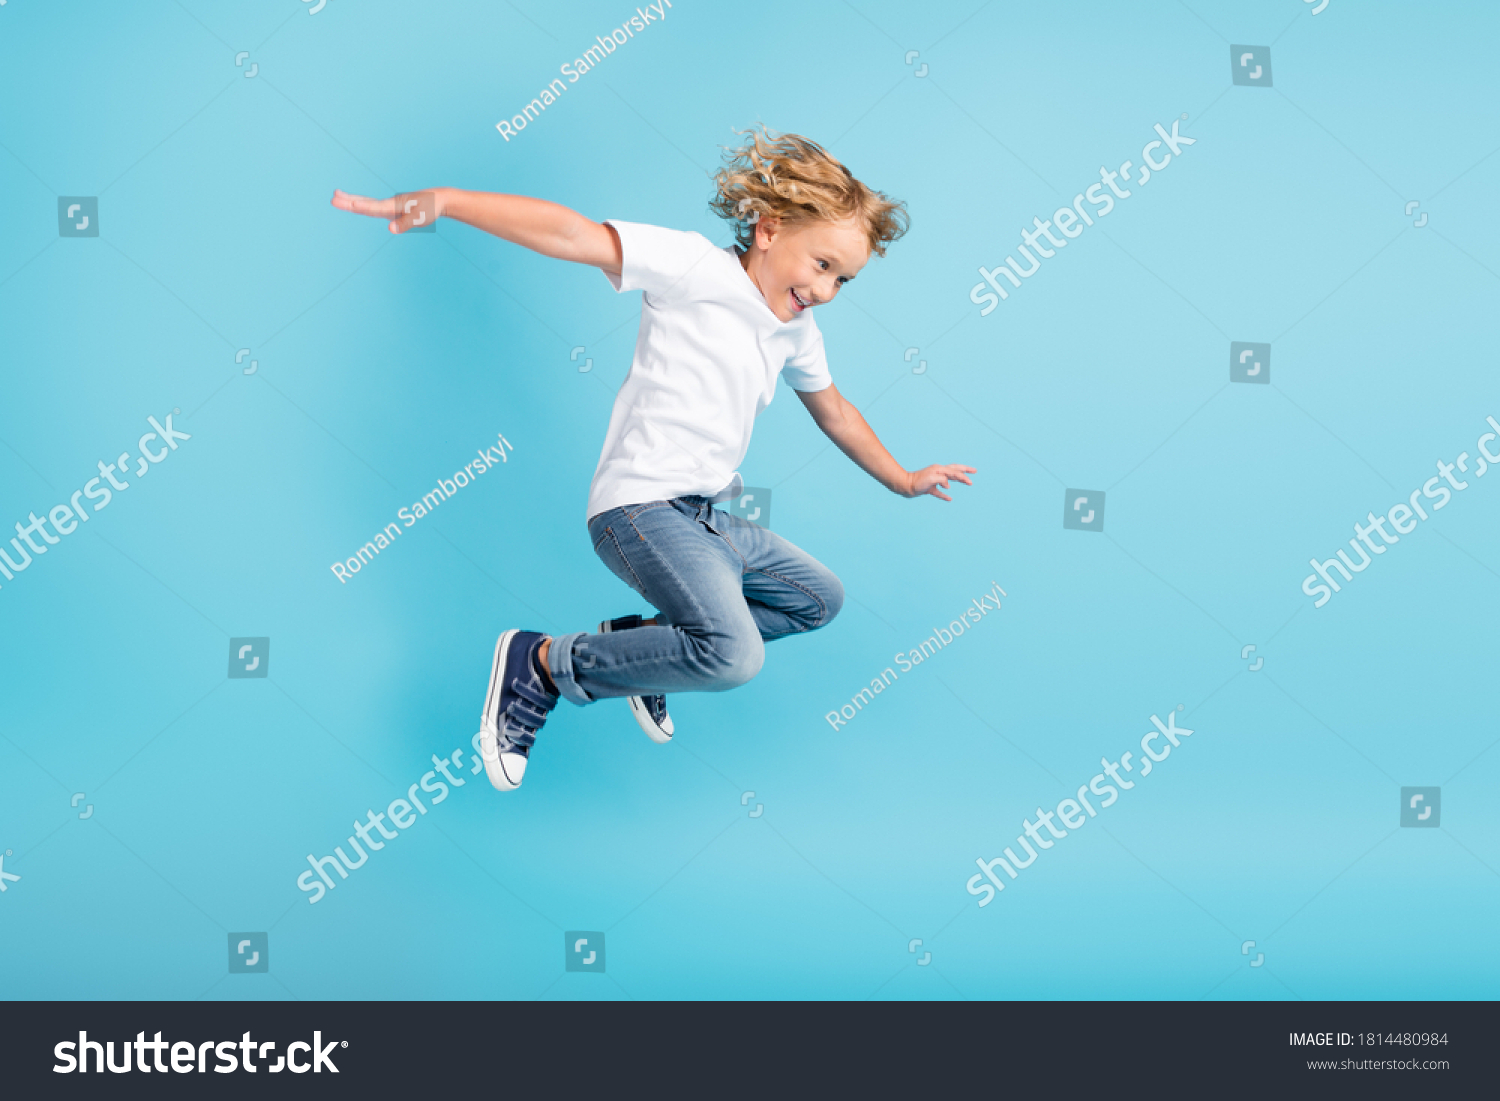 Profile photo of young boy jump fly movement hands wear white shirt jeans sneakers isolated blue color background #1814480984